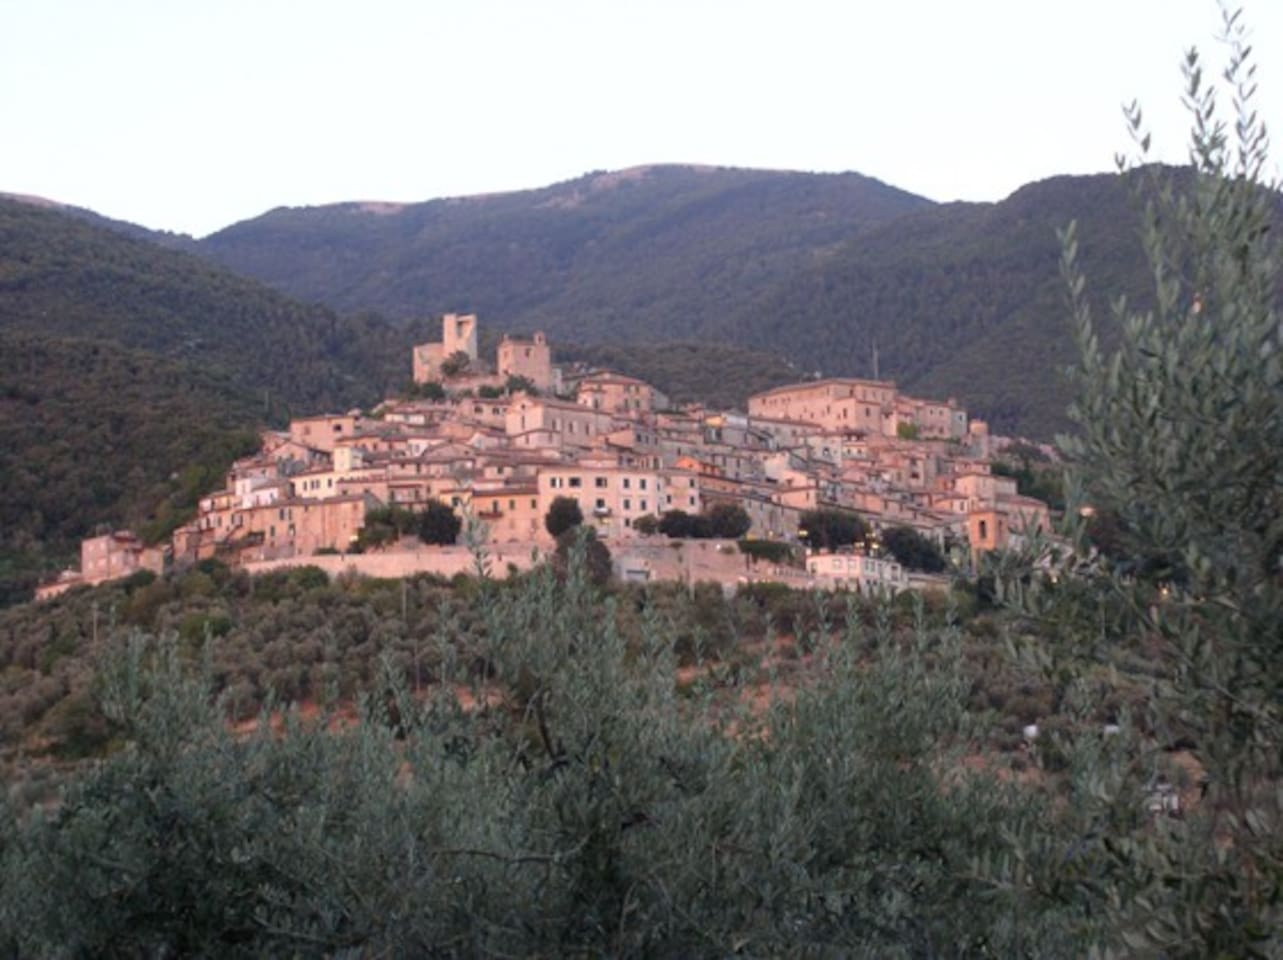 Roccantica - a magical experience in the Sabina mountains; one hour north of Rome!